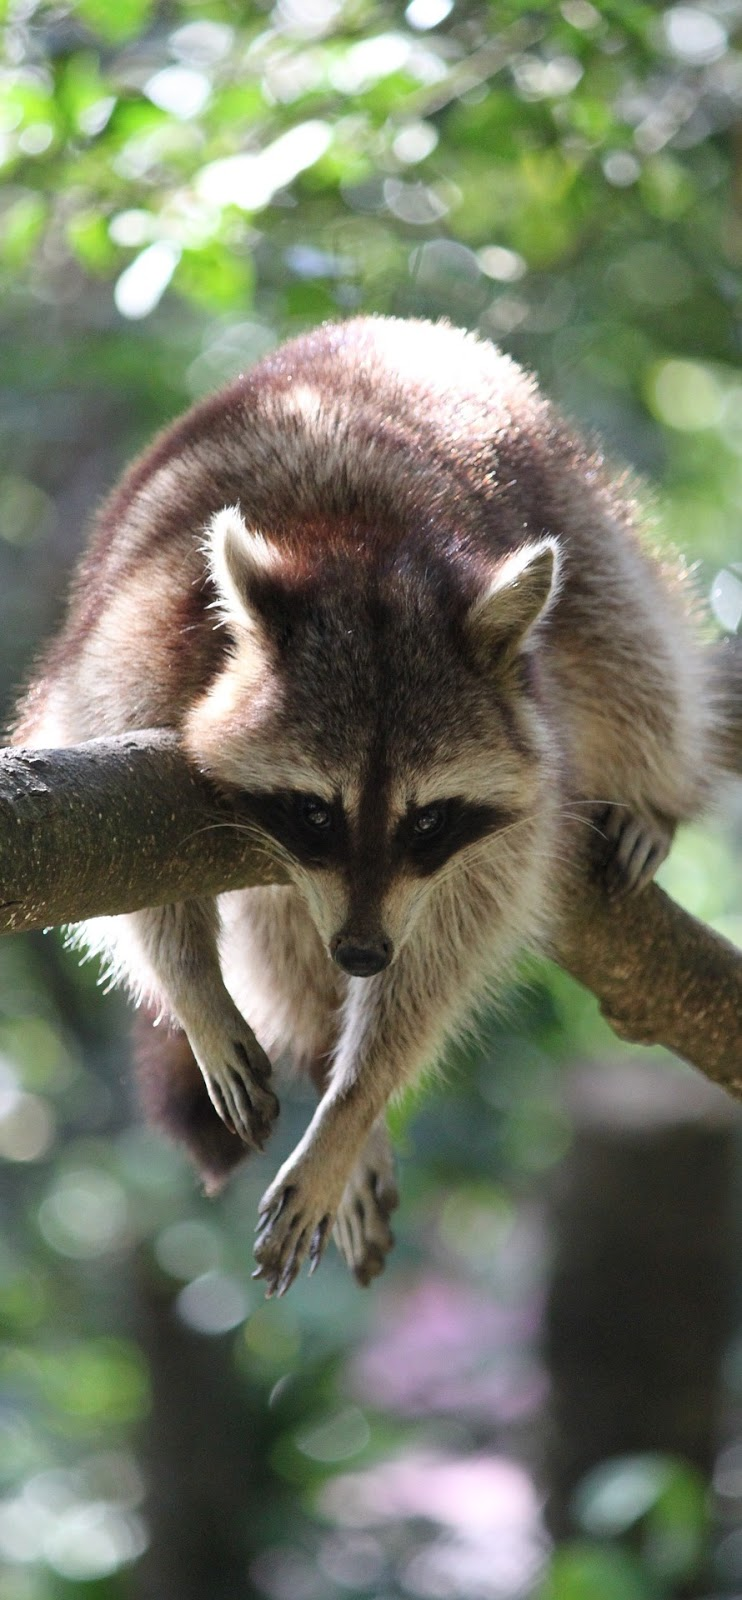 A raccoon hanging from a tree branch.